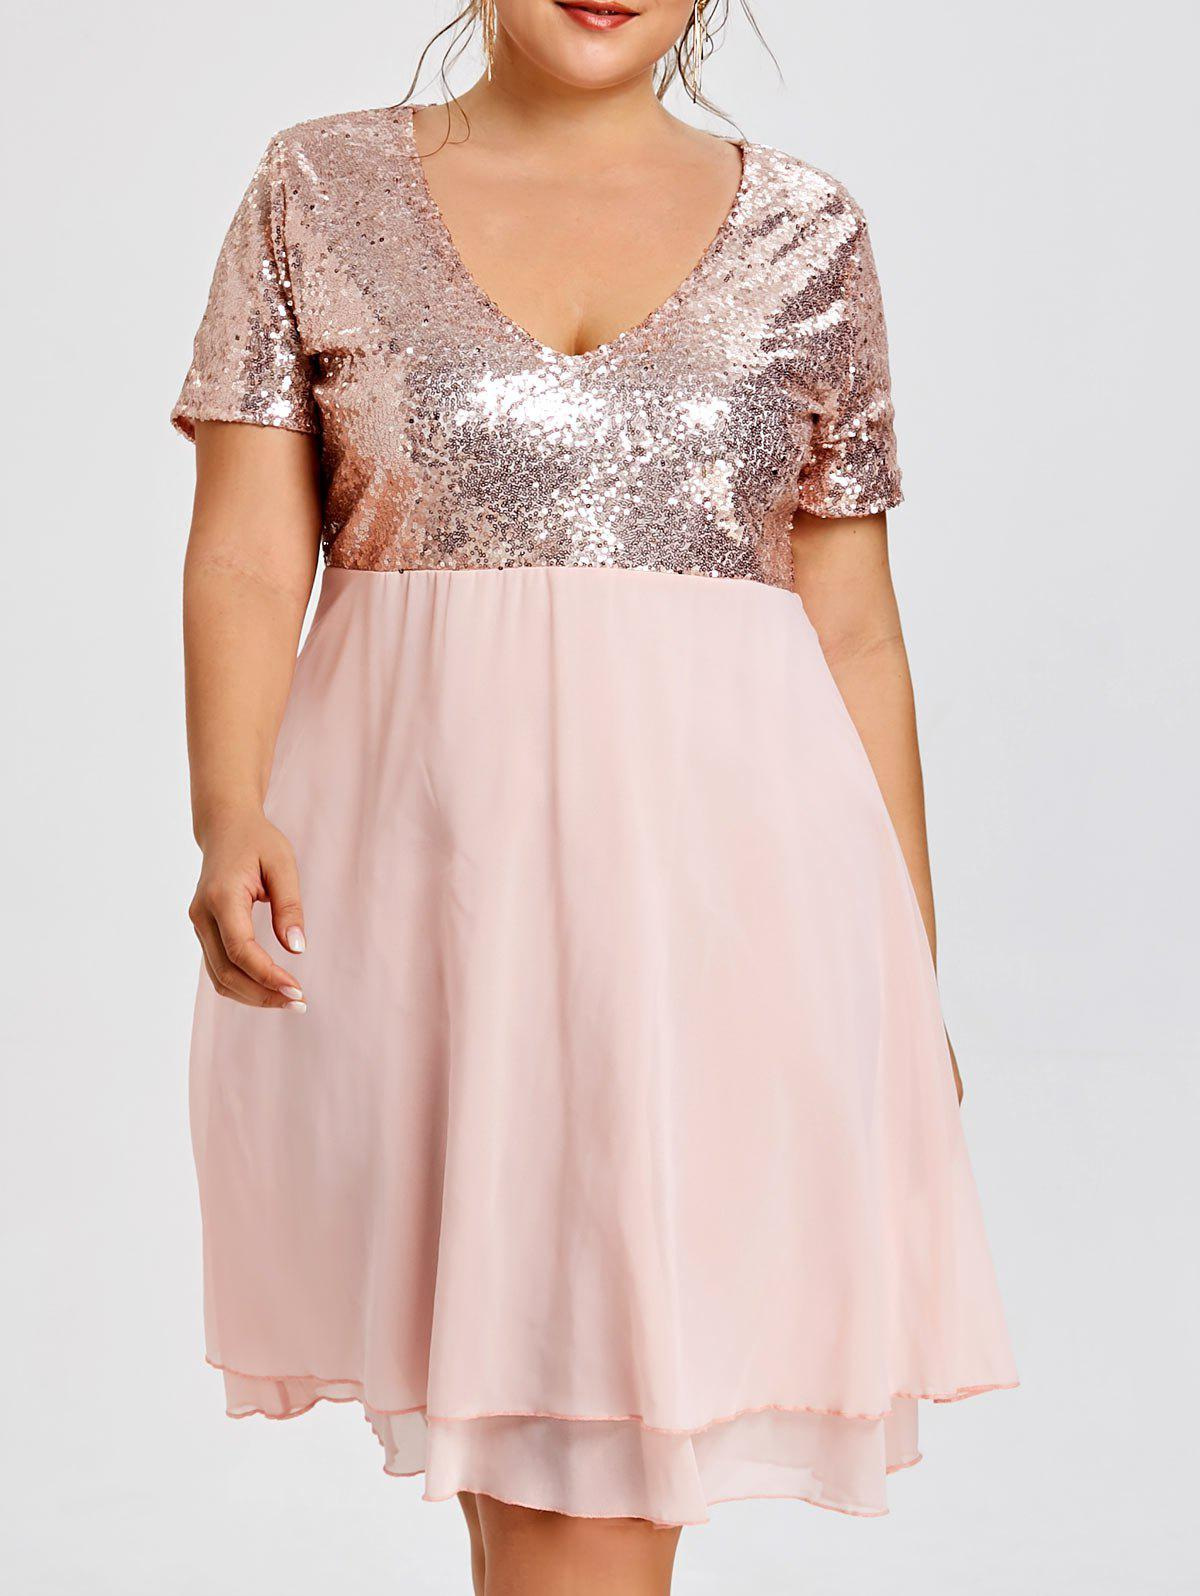 Plus Size Sparkly Sequin Homecoming Dress v neck a line plus size homecoming dress